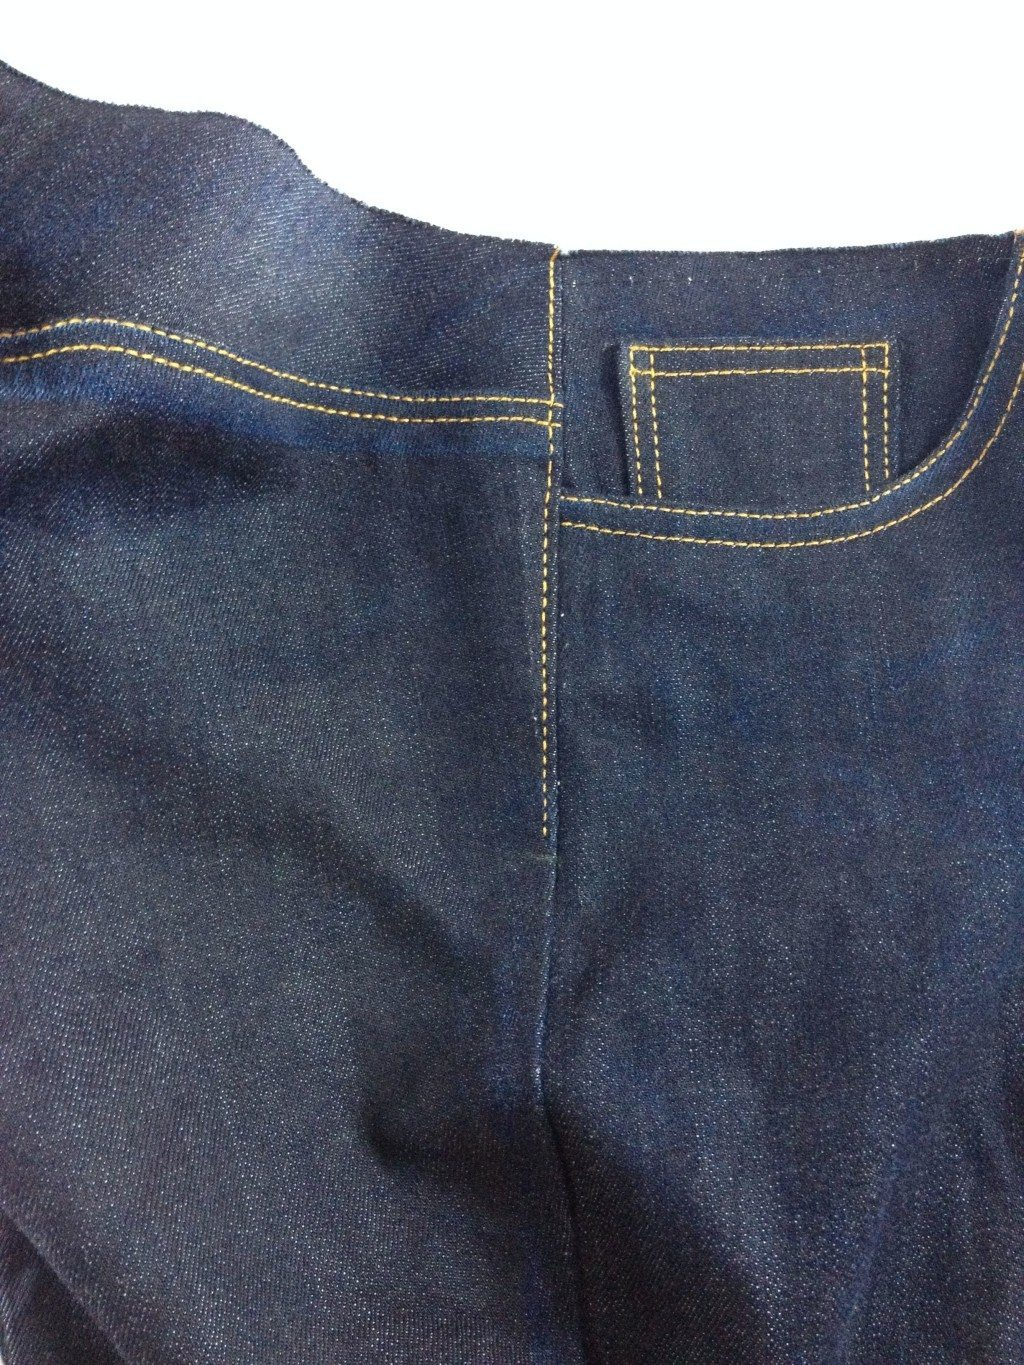 Liana Stretch Jeans Sewalong Day 9 topstitch side seam